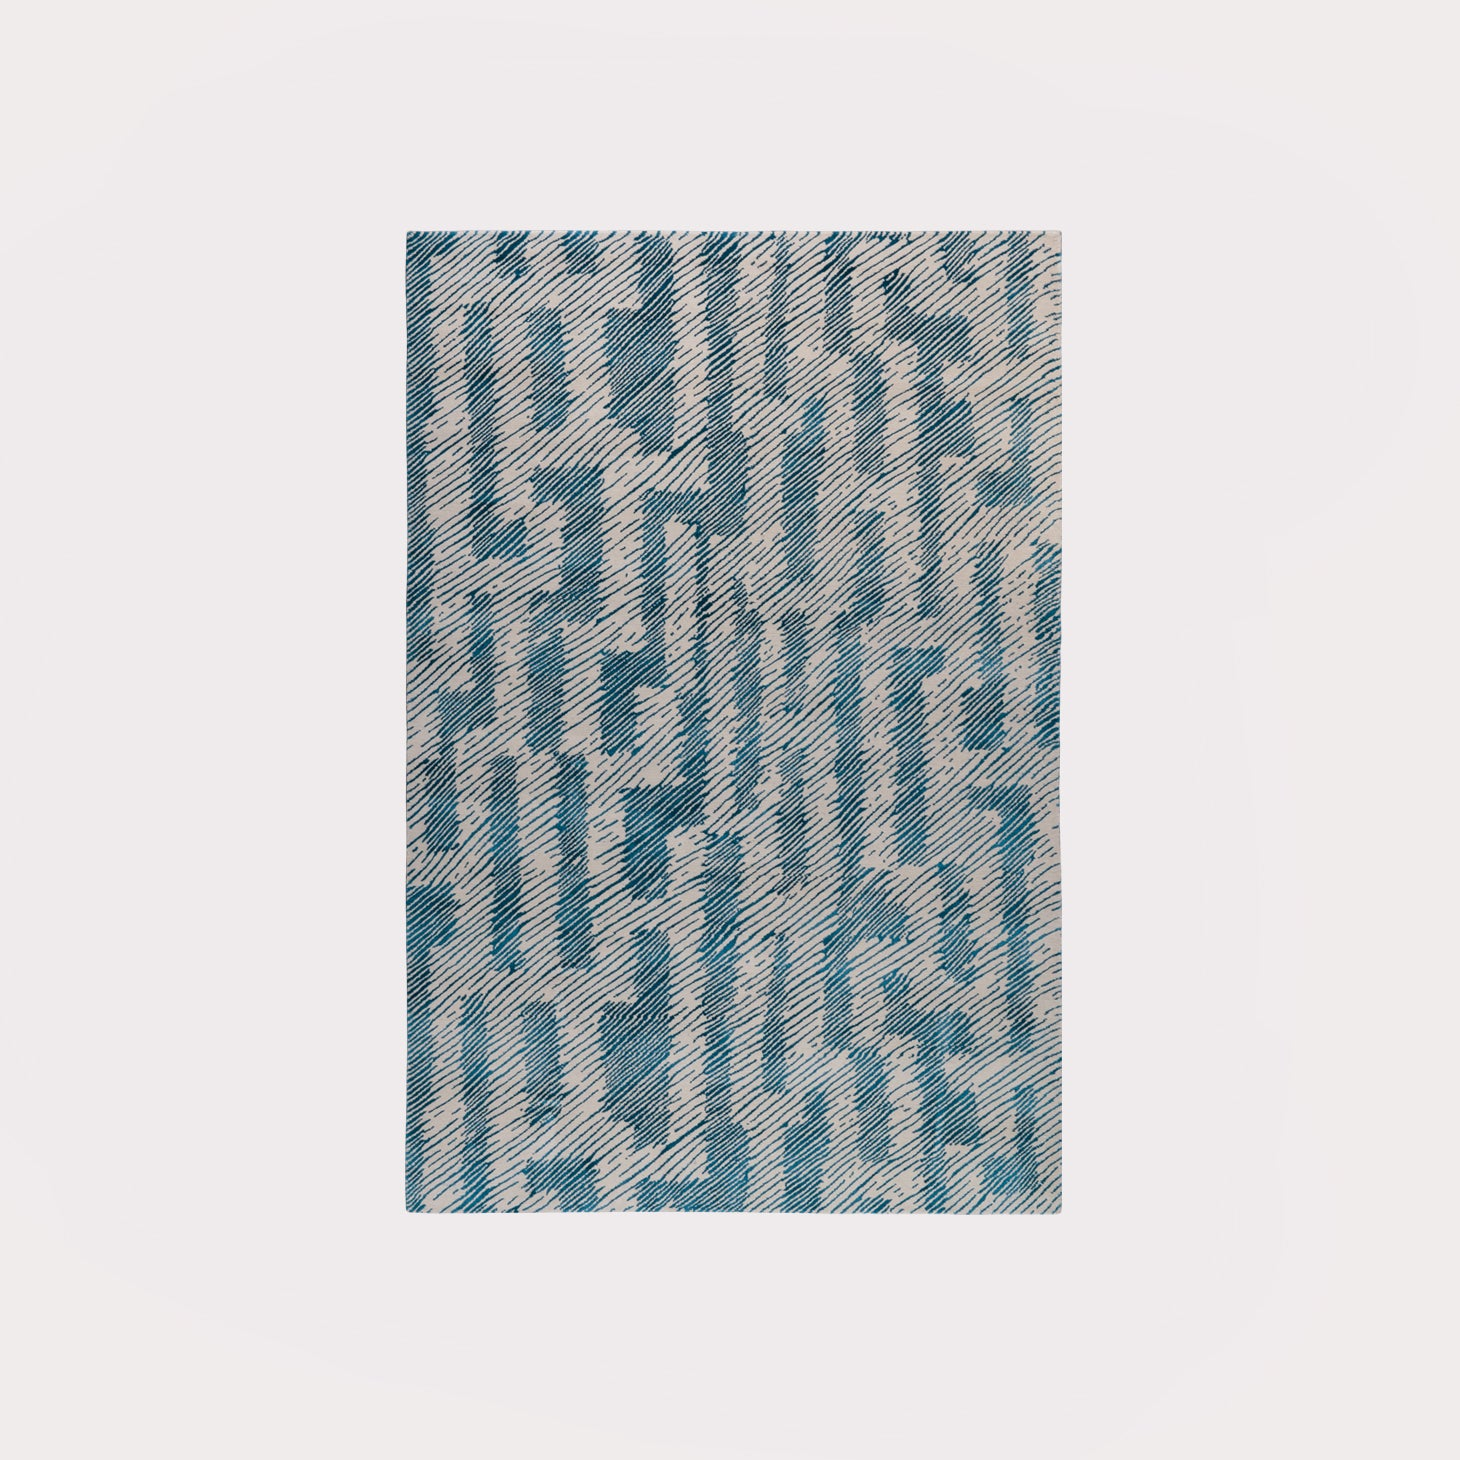 Verge Azure Floor Coverings Kelly Wearstler Designer Furniture Sku: 391-150-11397